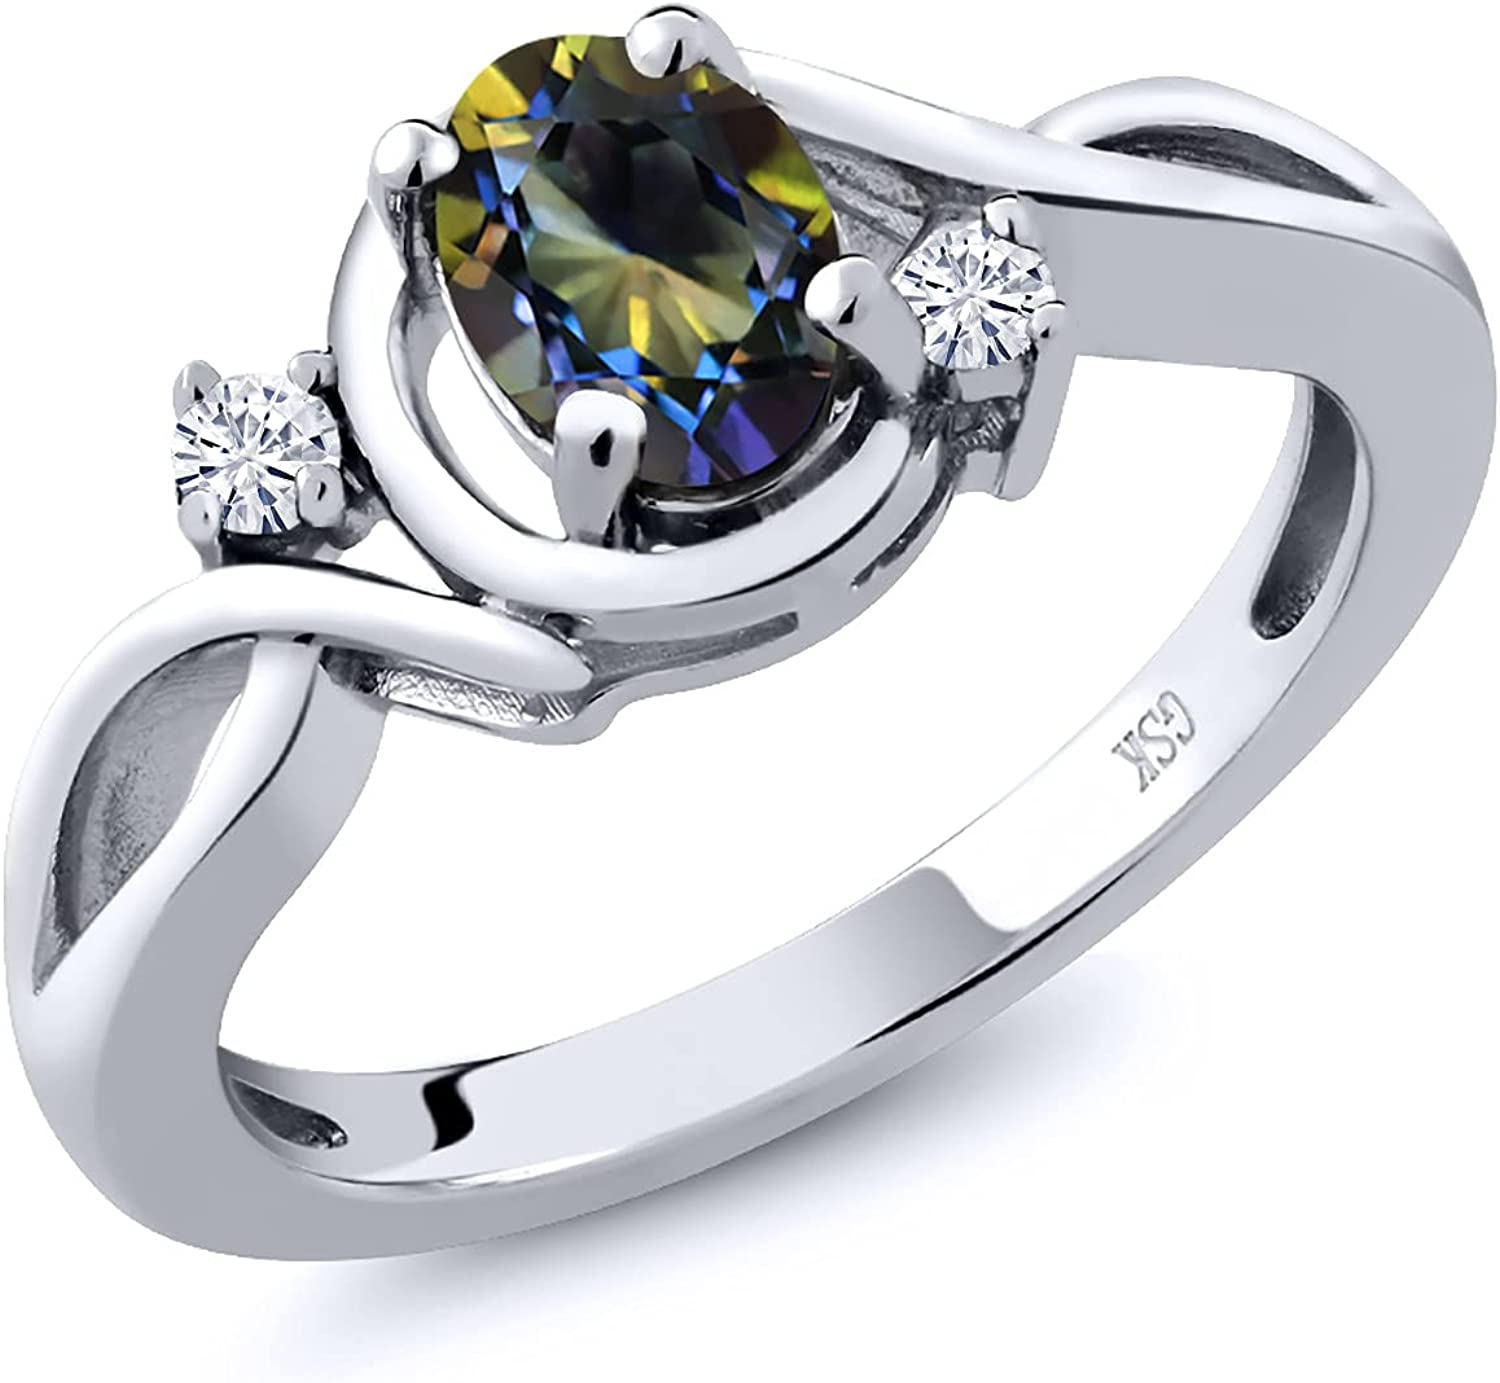 925 Sterling Sales of SALE items from new works Silver Fashion SALENEW very popular! Right-Hand Ring Top Mystic Blue Oval